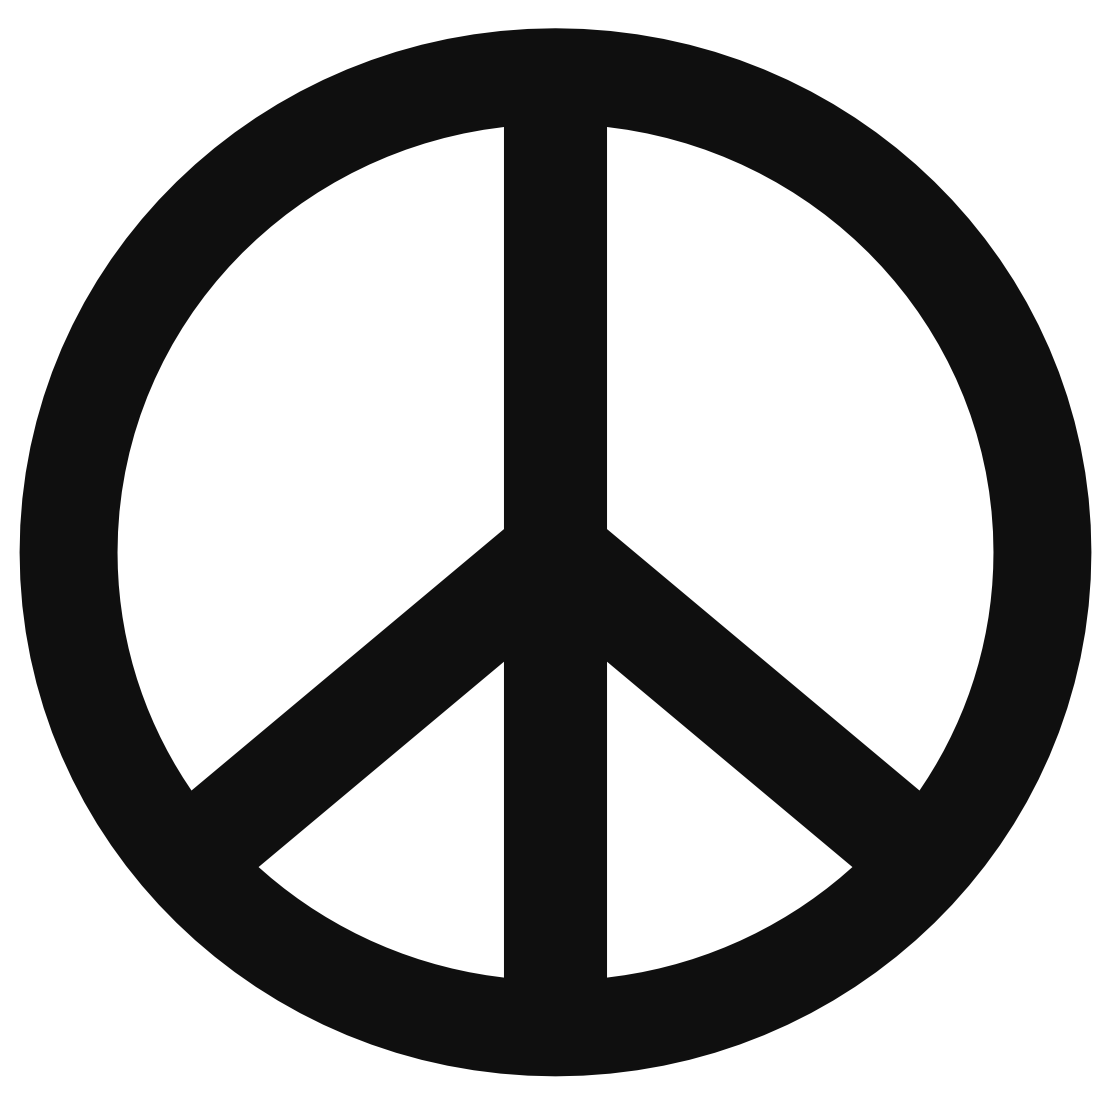 Clipart peace sign